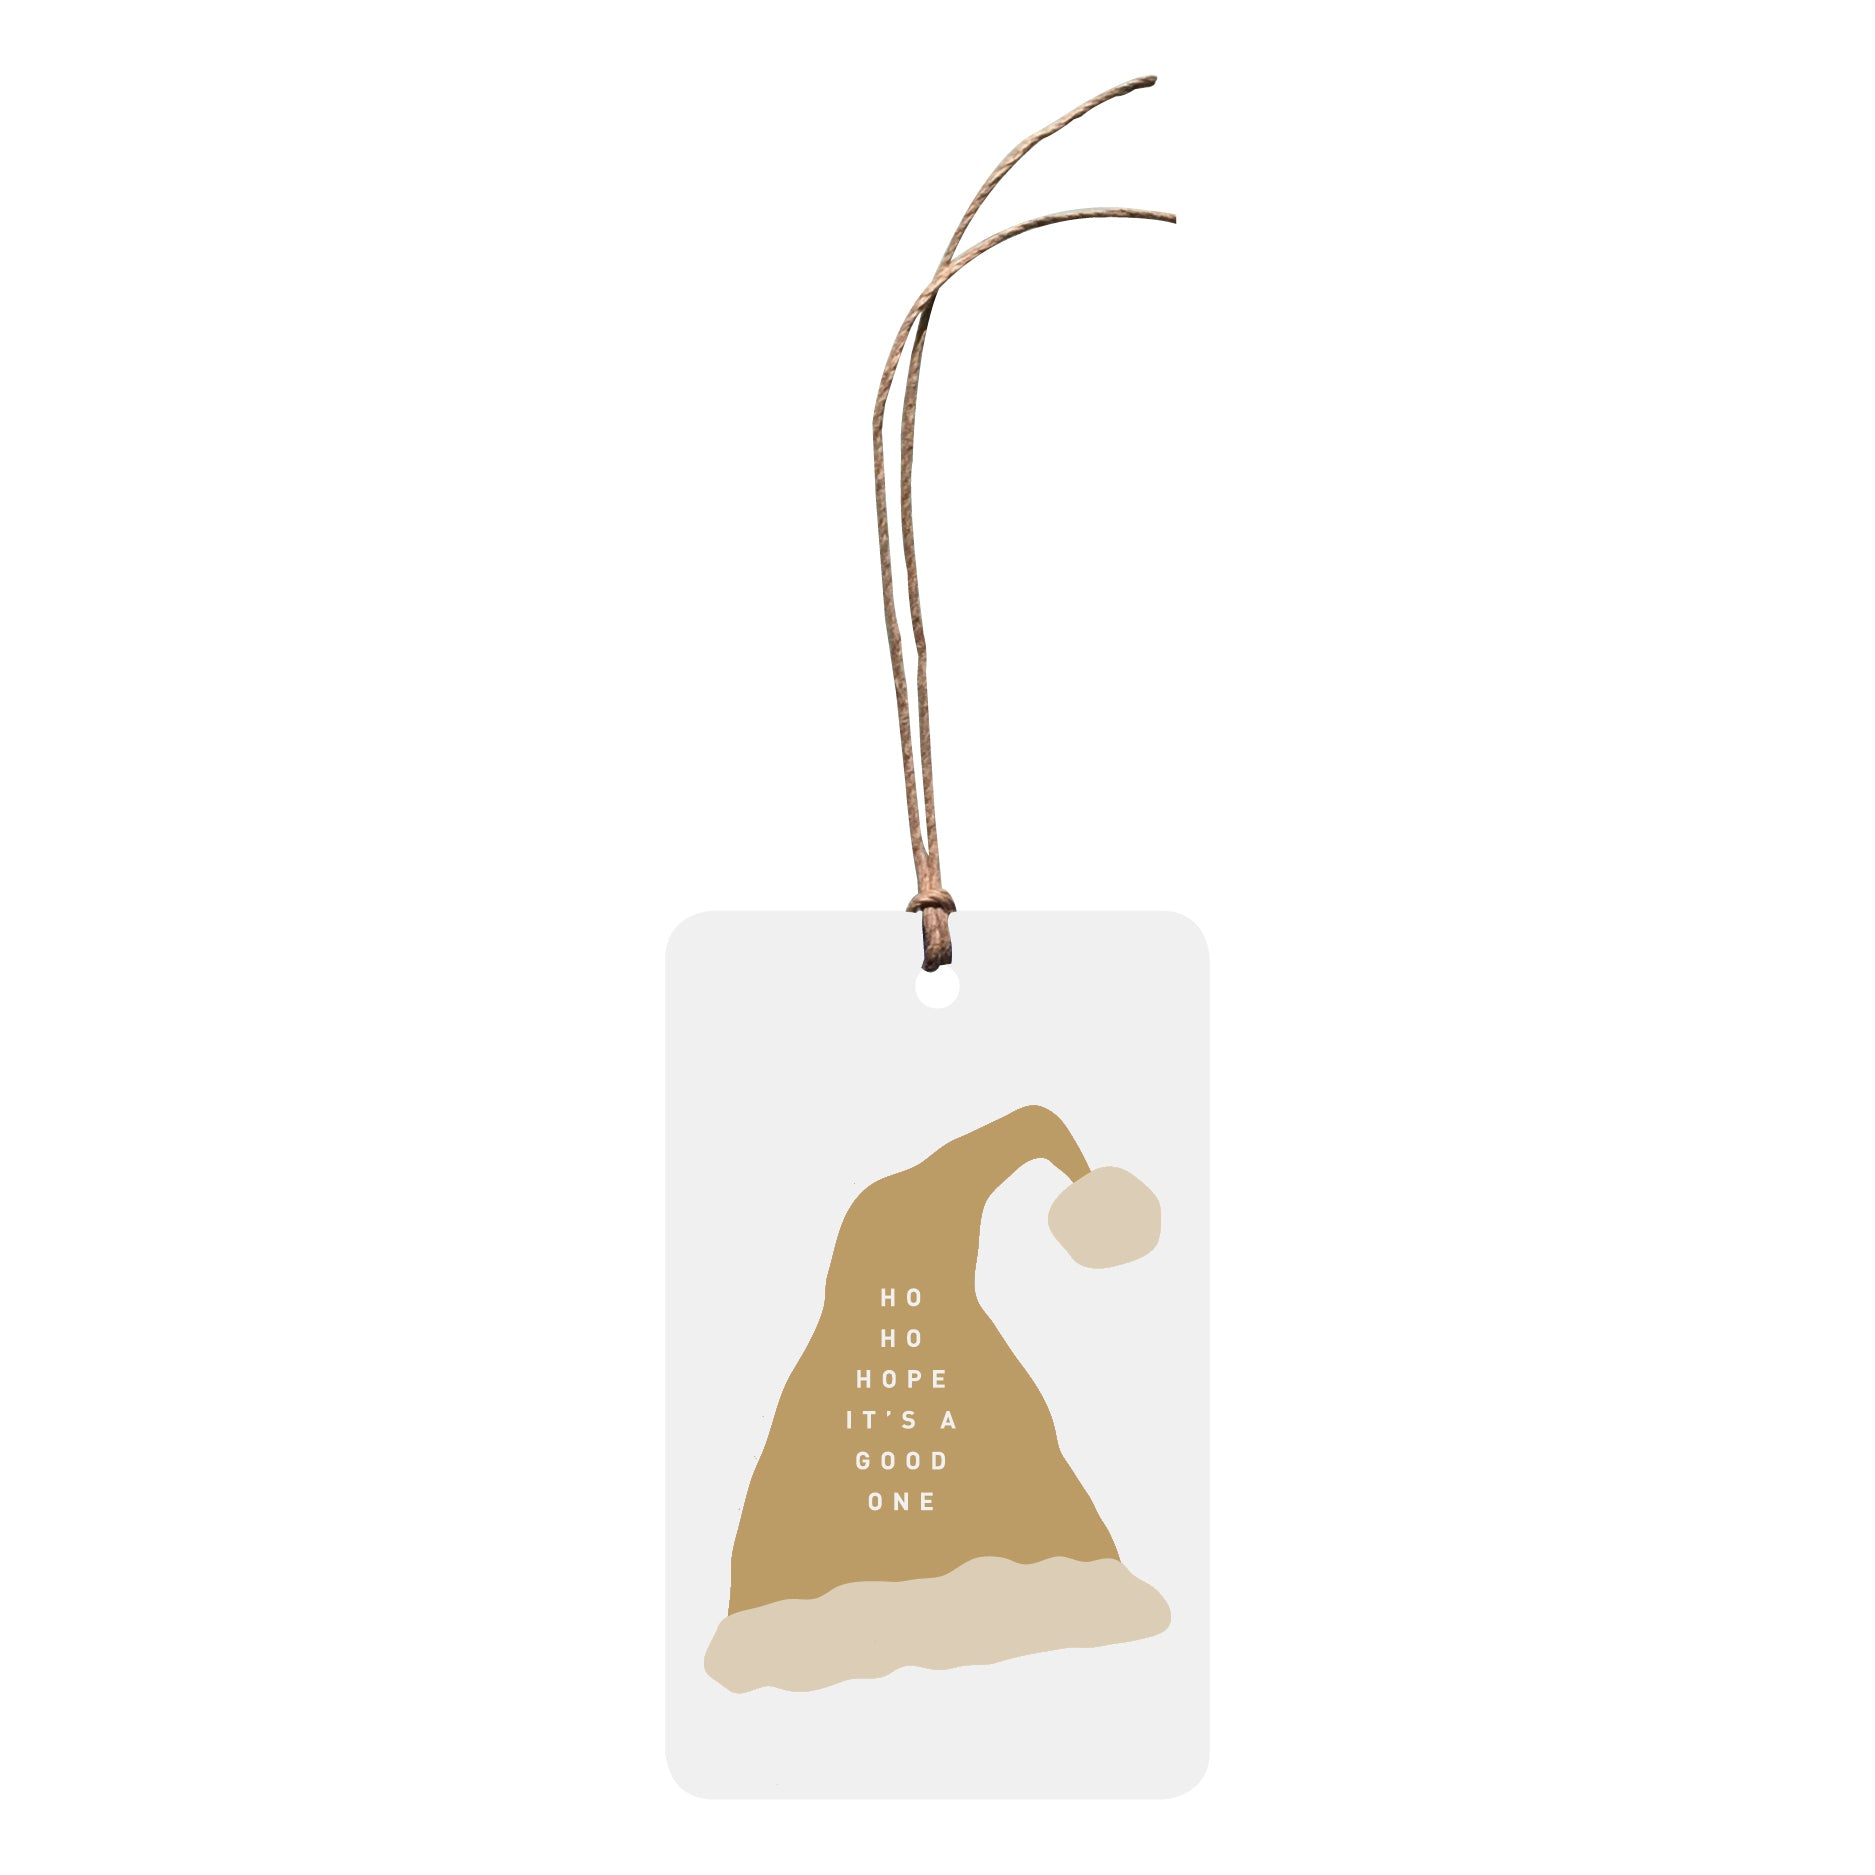 'Ho Ho Hope It's a Good One' Christmas Gift Tag